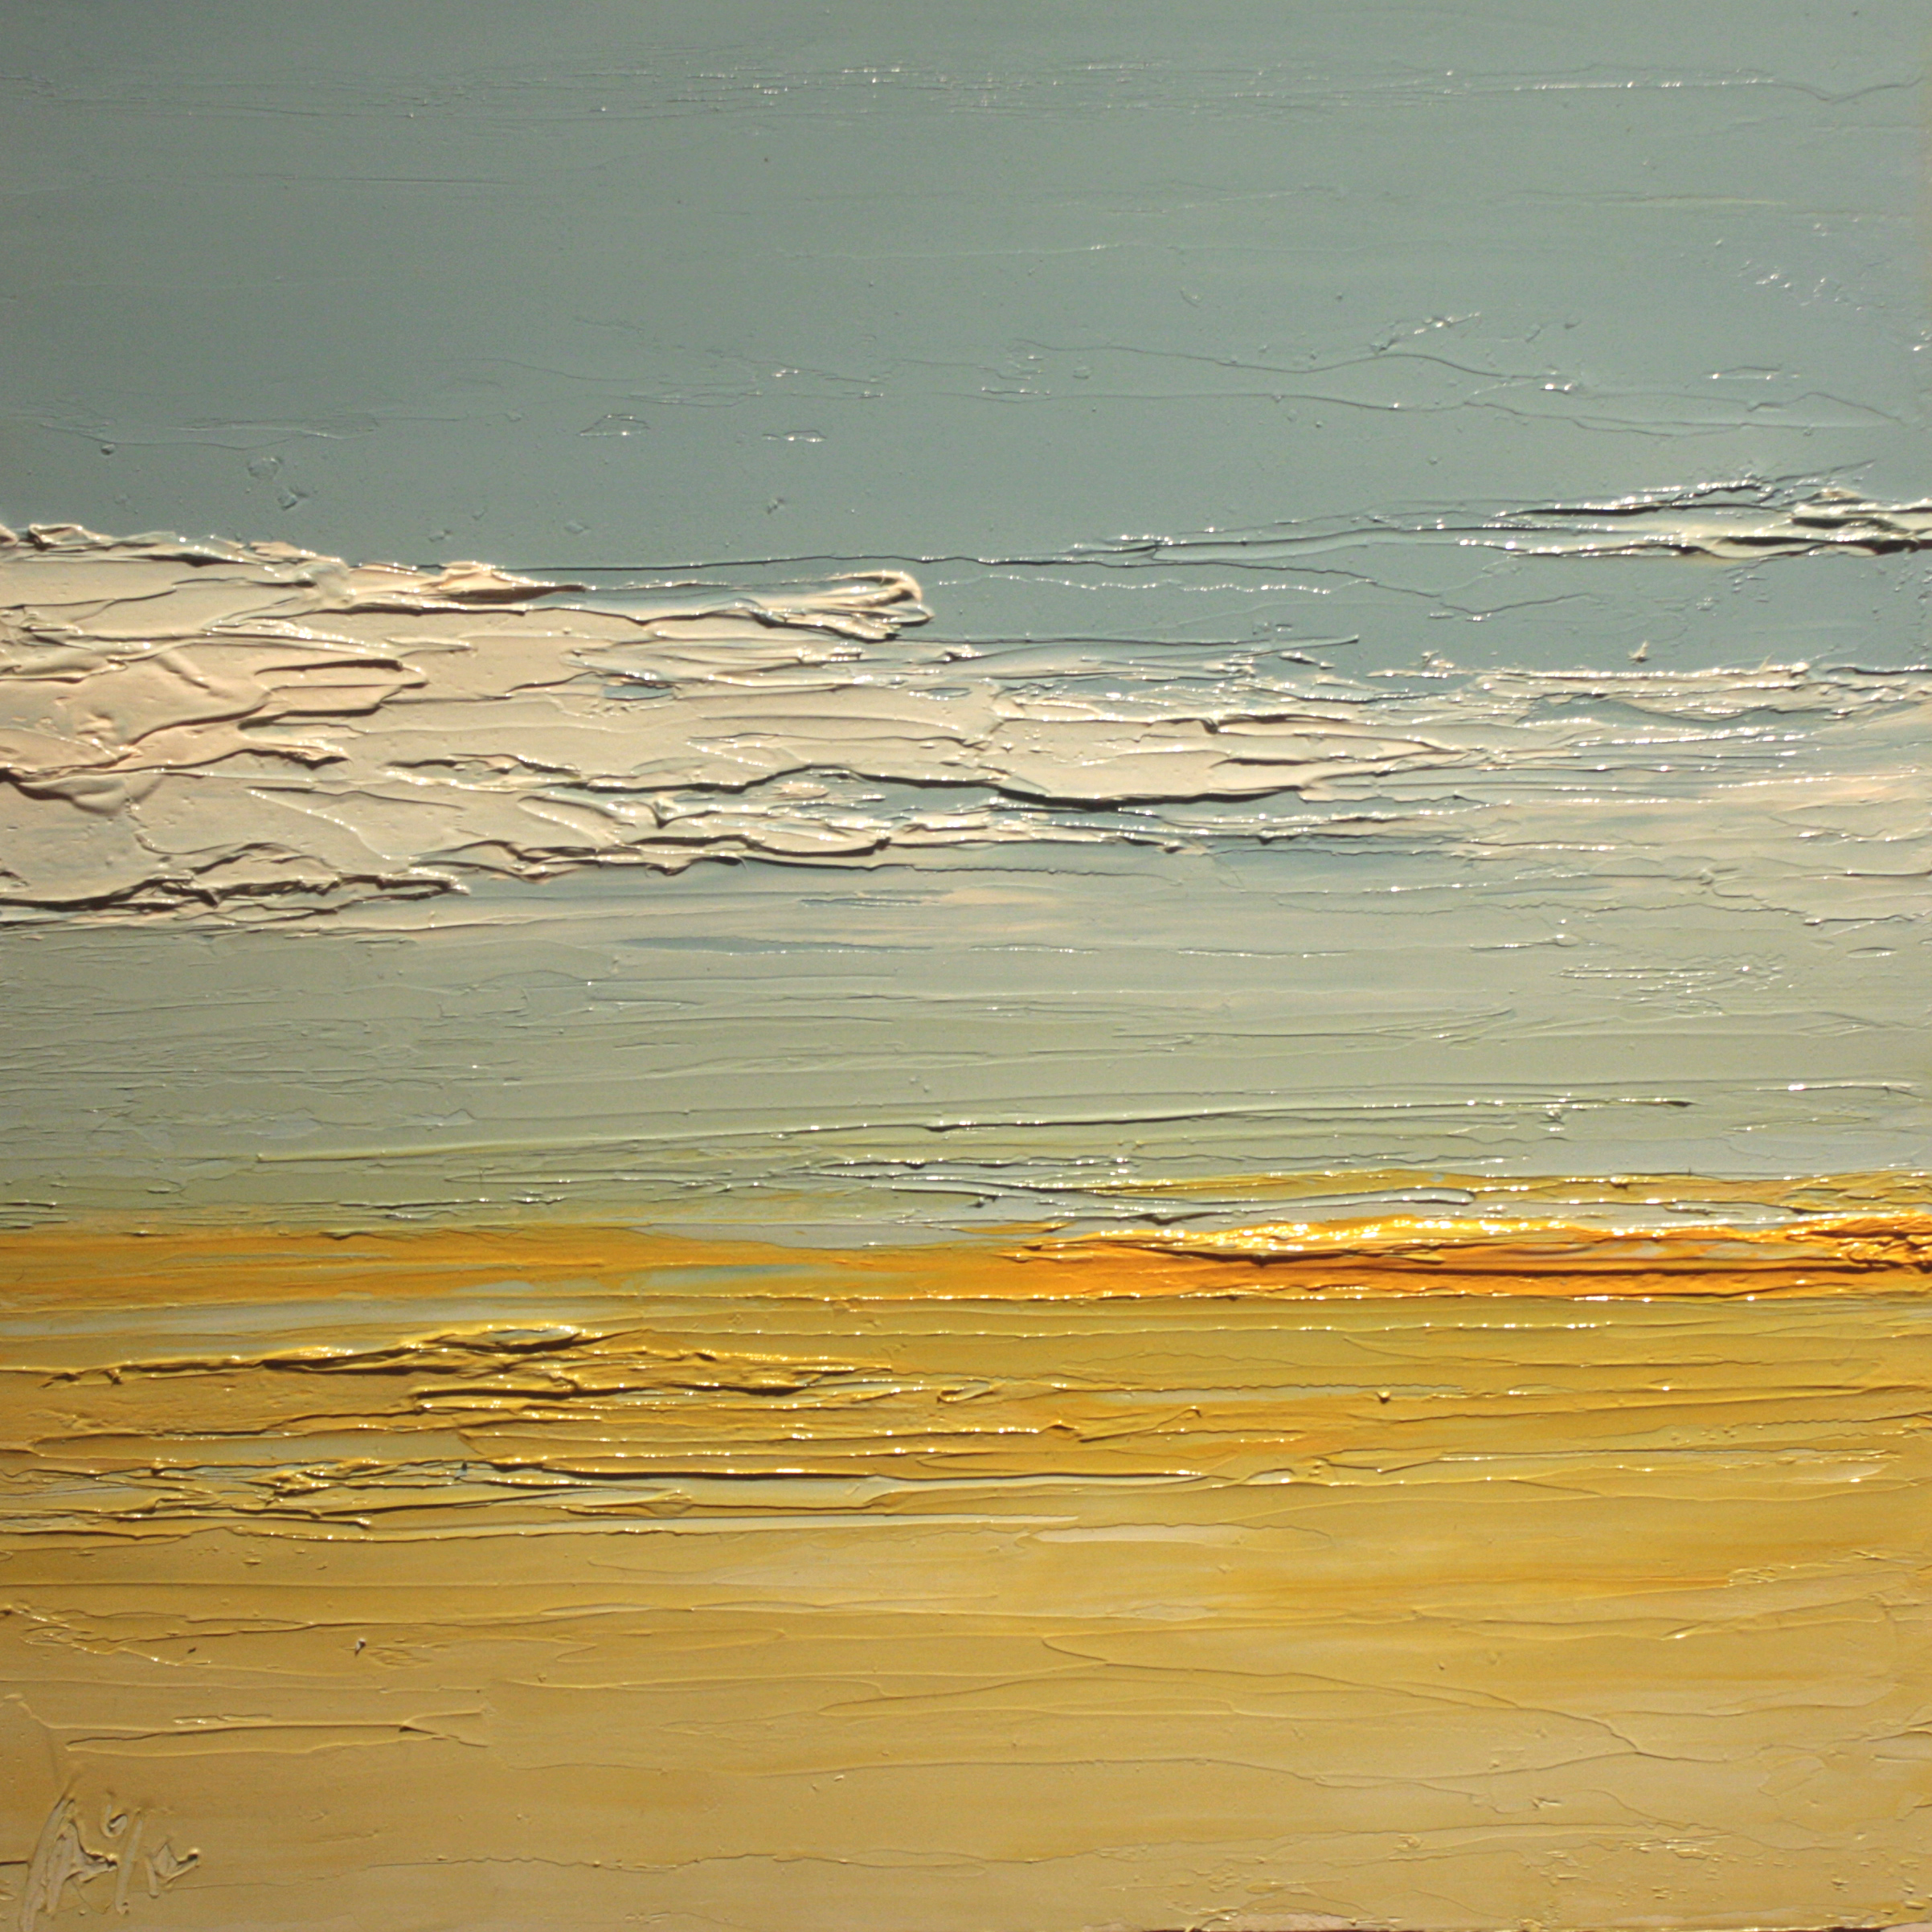 At The Horizon - Orange Stripe Sky, oil on board, 12 by 12 inches, $1500 (sold)